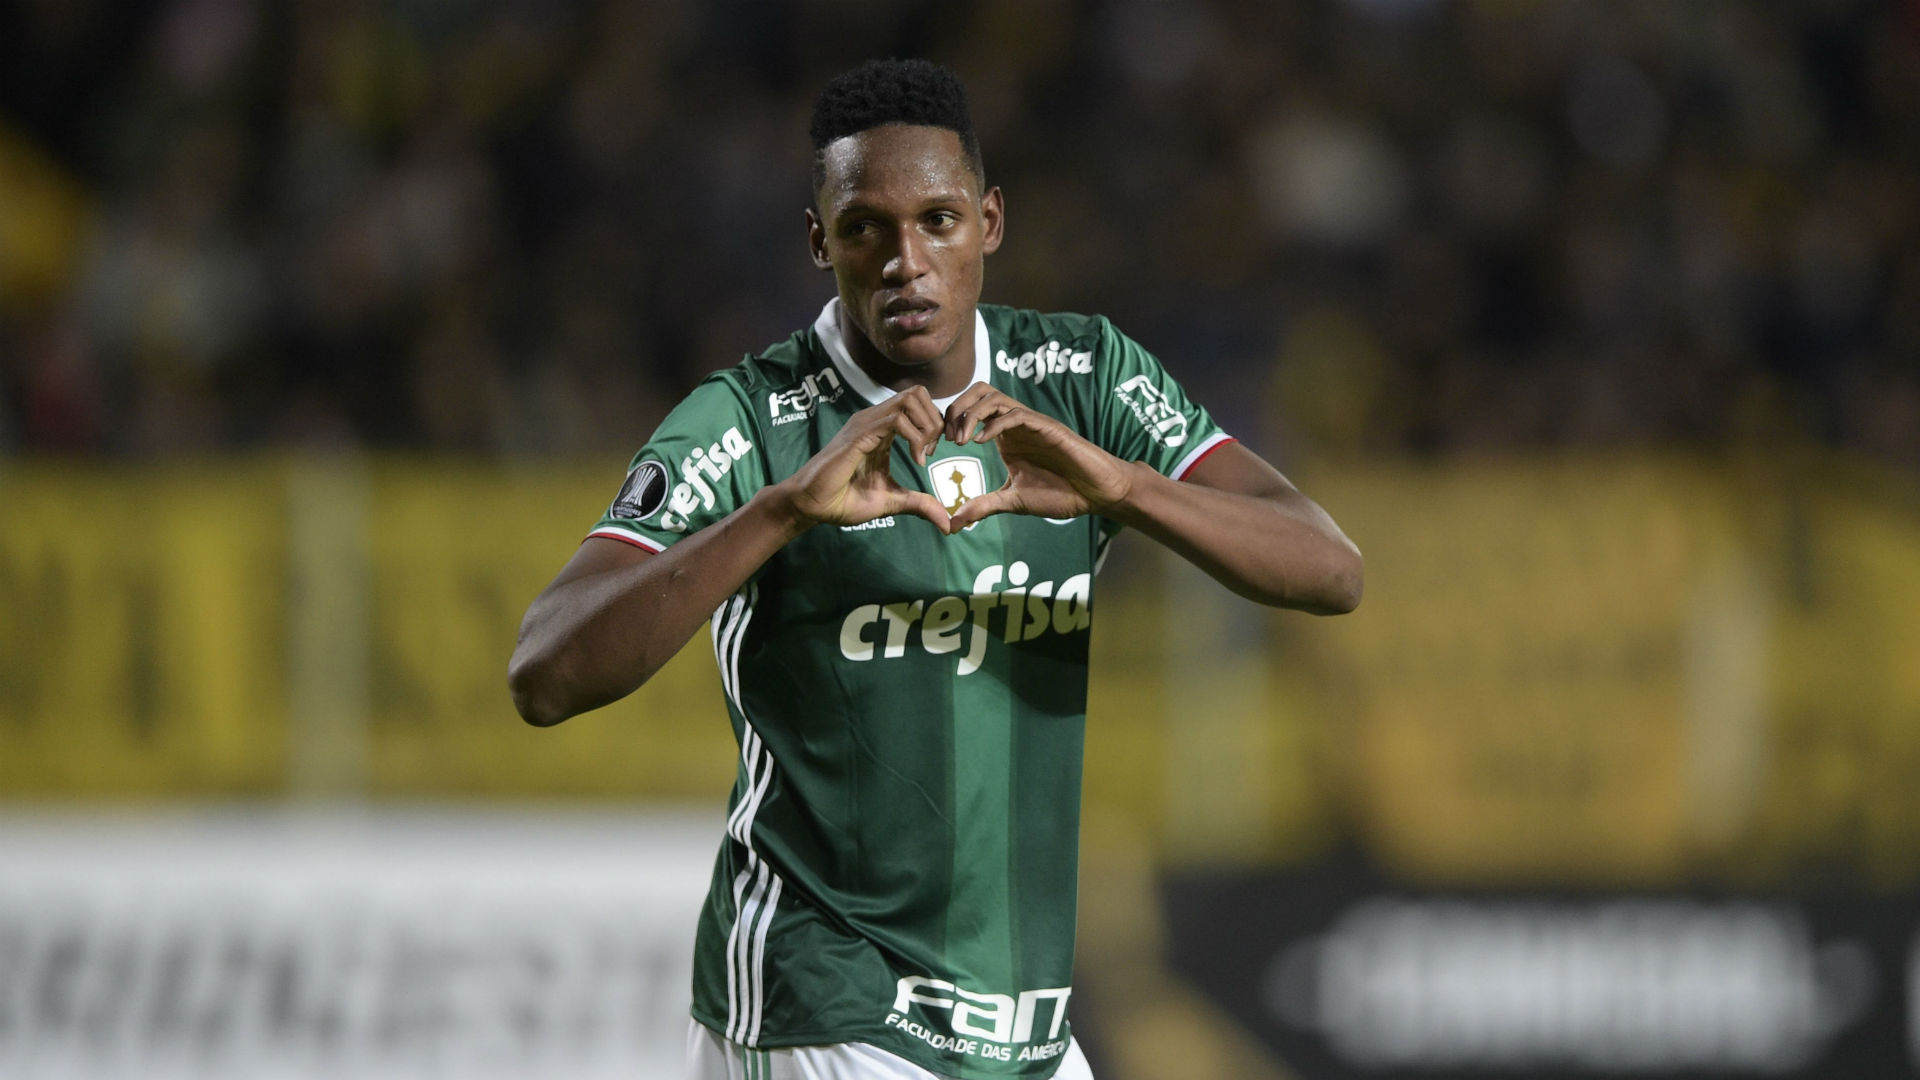 Football player biography, photo, personal life, wife, height and weight 2018 4